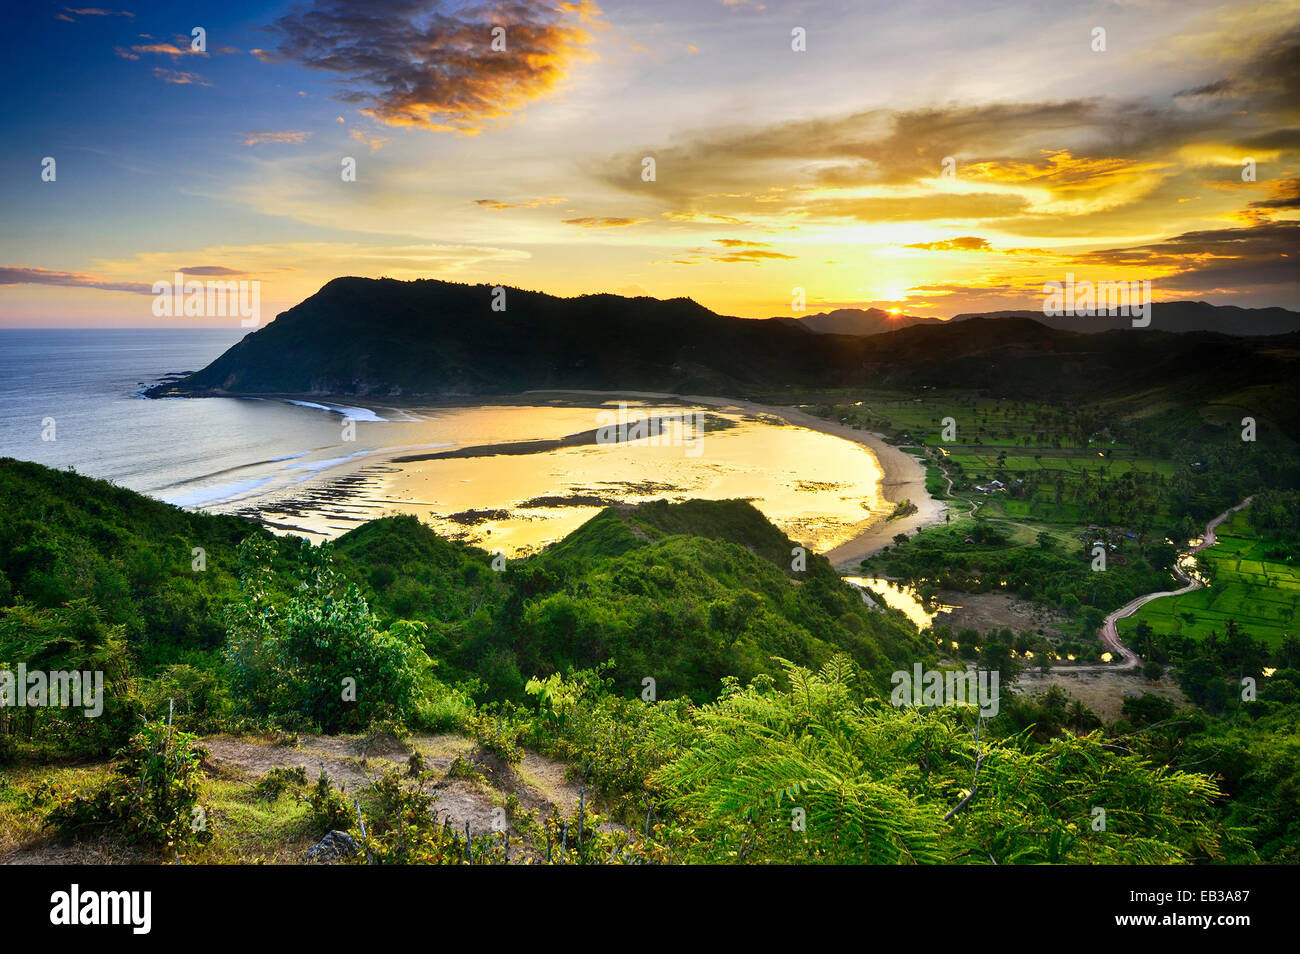 Elevated view of bay at sunset - Stock Image